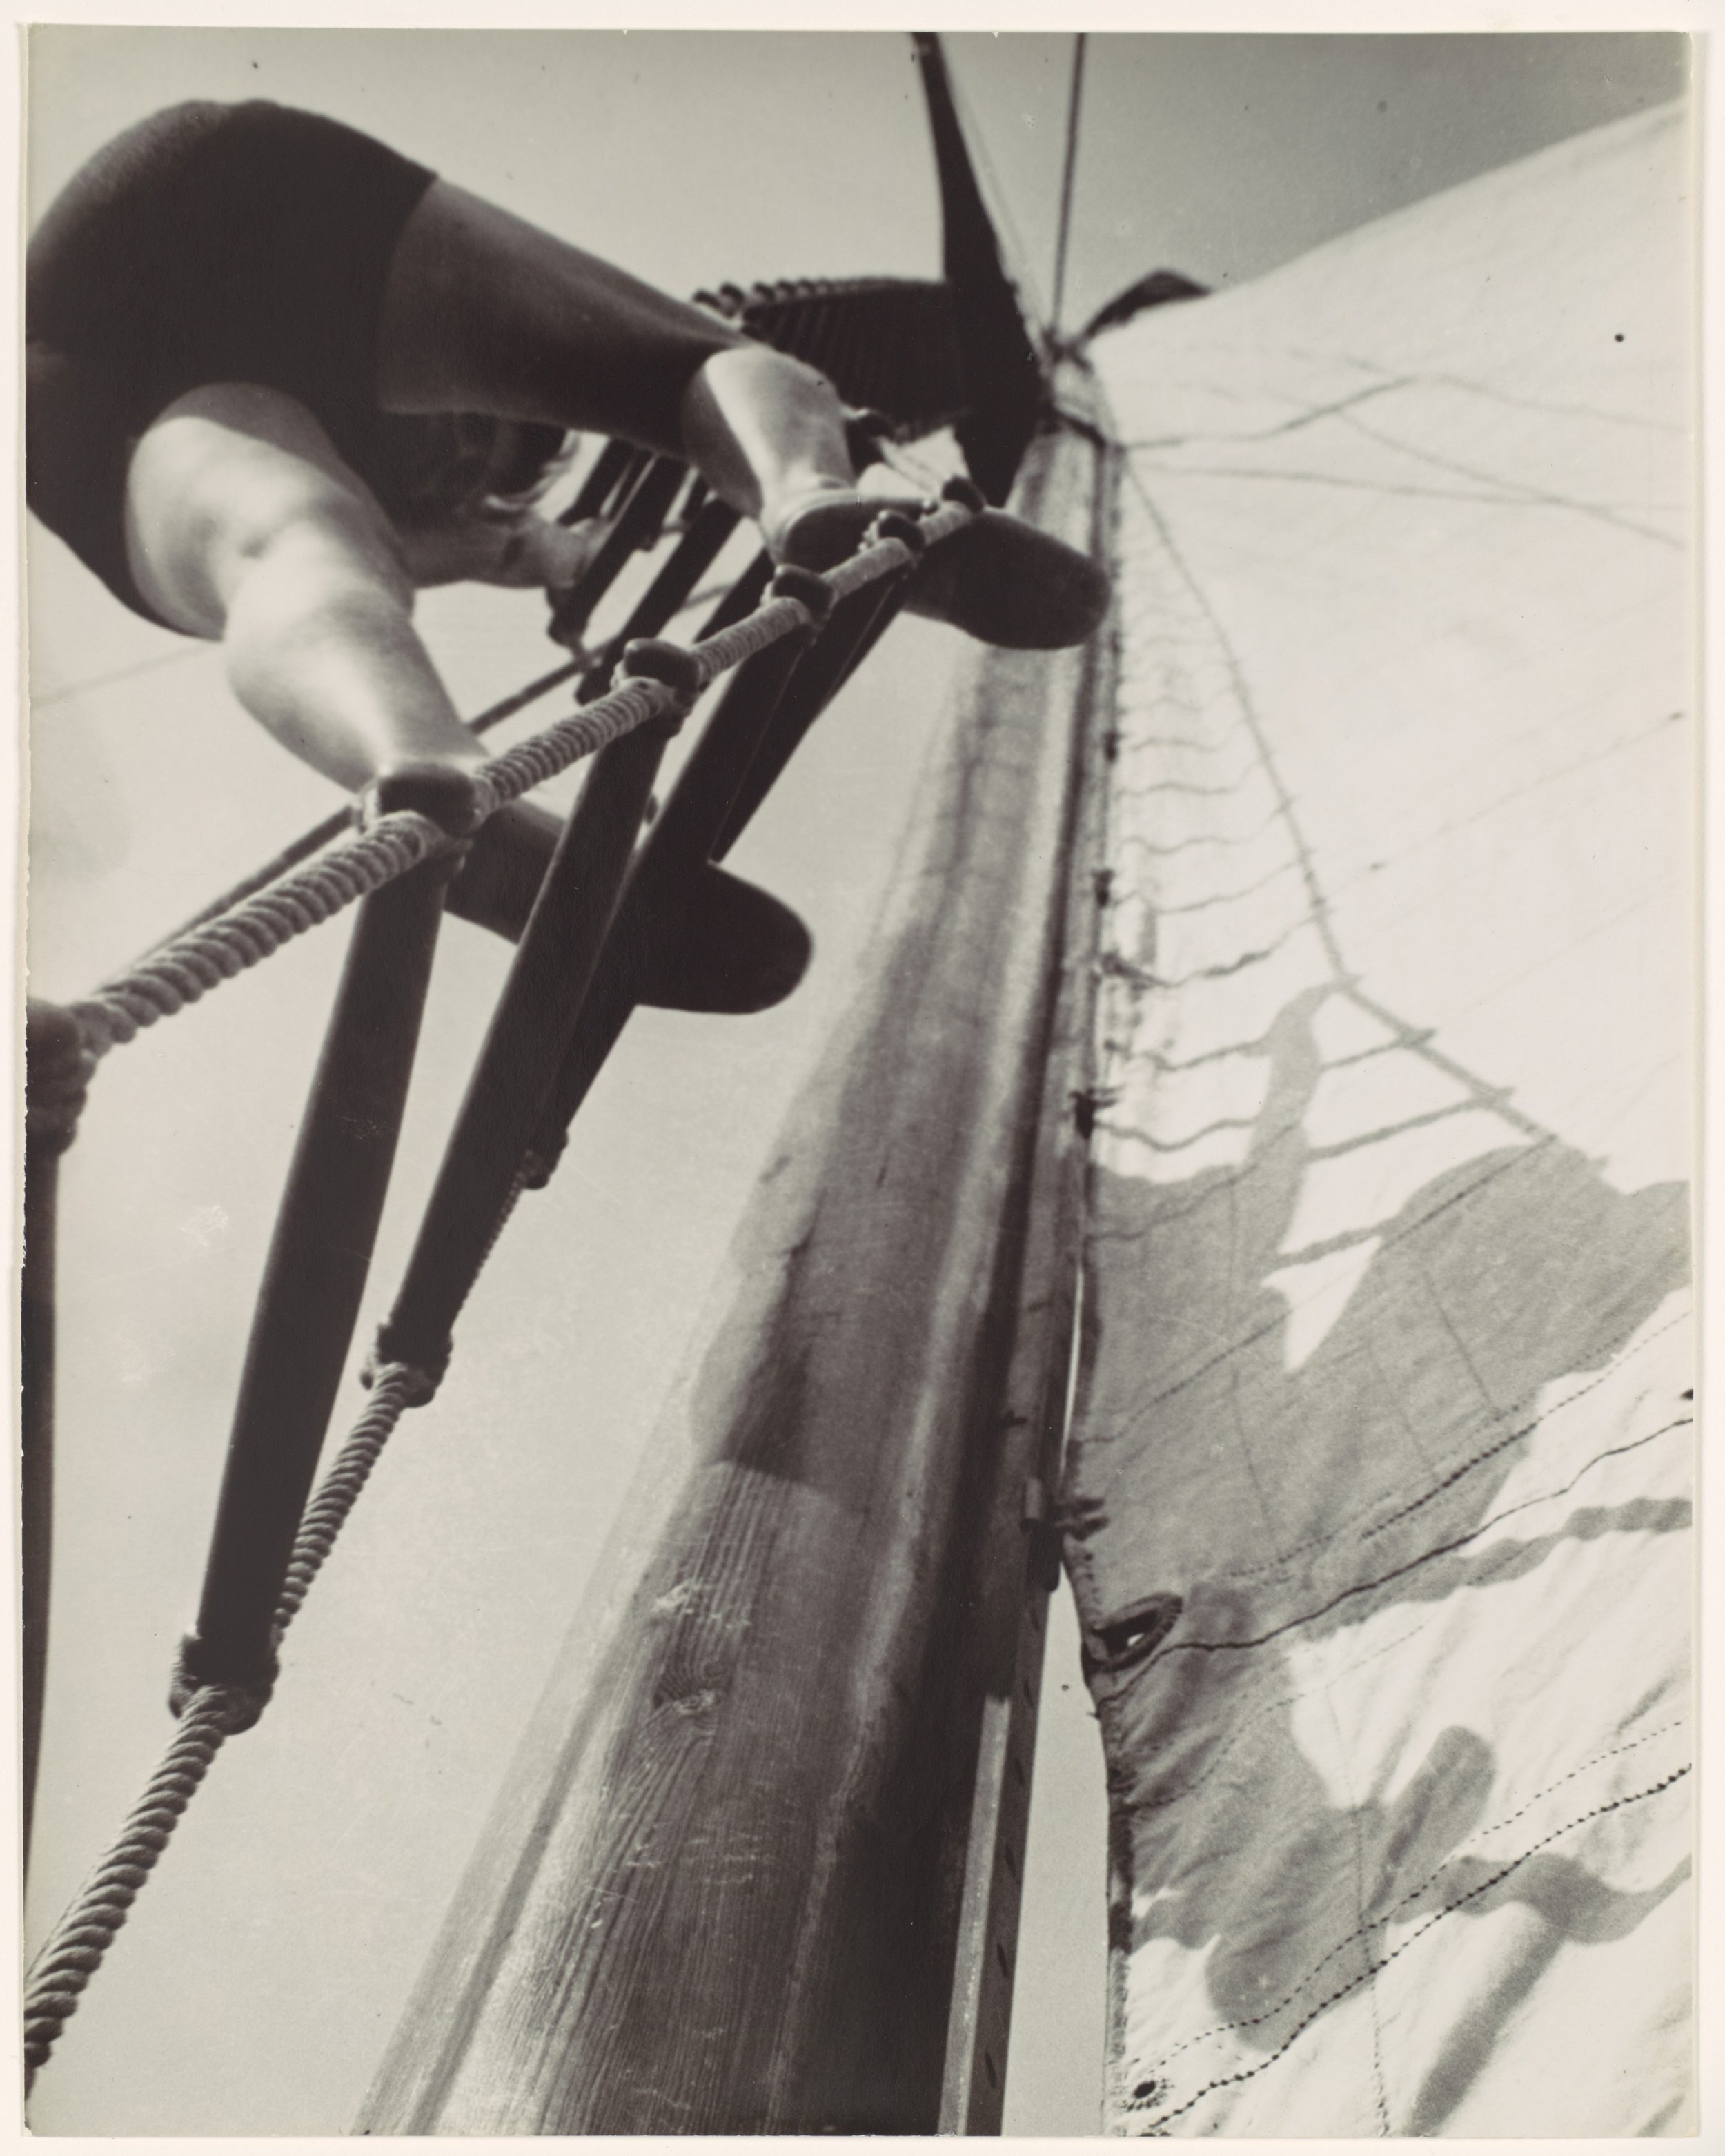 "László Moholy-Nagy, (1895, Bácsborsód, Ungheria) - According to his belief known as ""the New Vision"", photography is the means of capturing reality in a whole new spectrum that is not entirely possible for human eye.Sculptor, photographer, designer, theorist, and art teacher, whose vision of a nonrepresentational art consisting of pure visual fundamentals-colour, texture, light, and equilibrium of forms, he headed the metal workshop of the famous avant-garde school of design known as the Bauhaus."